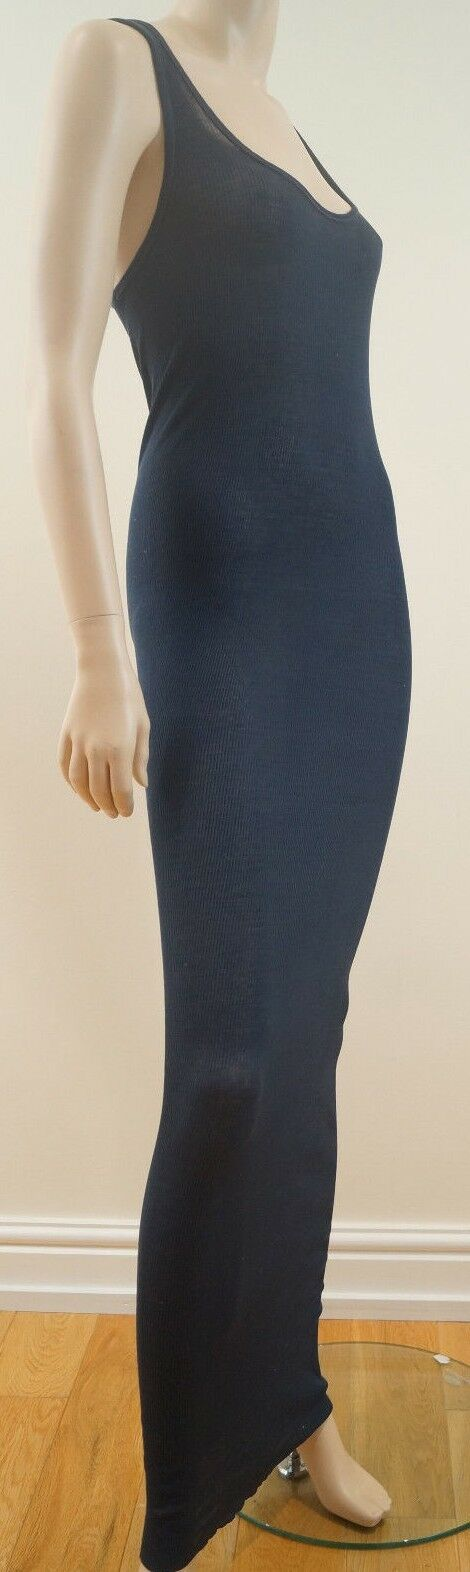 PINKO SKIN Navy bluee 100% Cotton Ribbed Long Length Sheer Fitted Maxi Dress Sz L